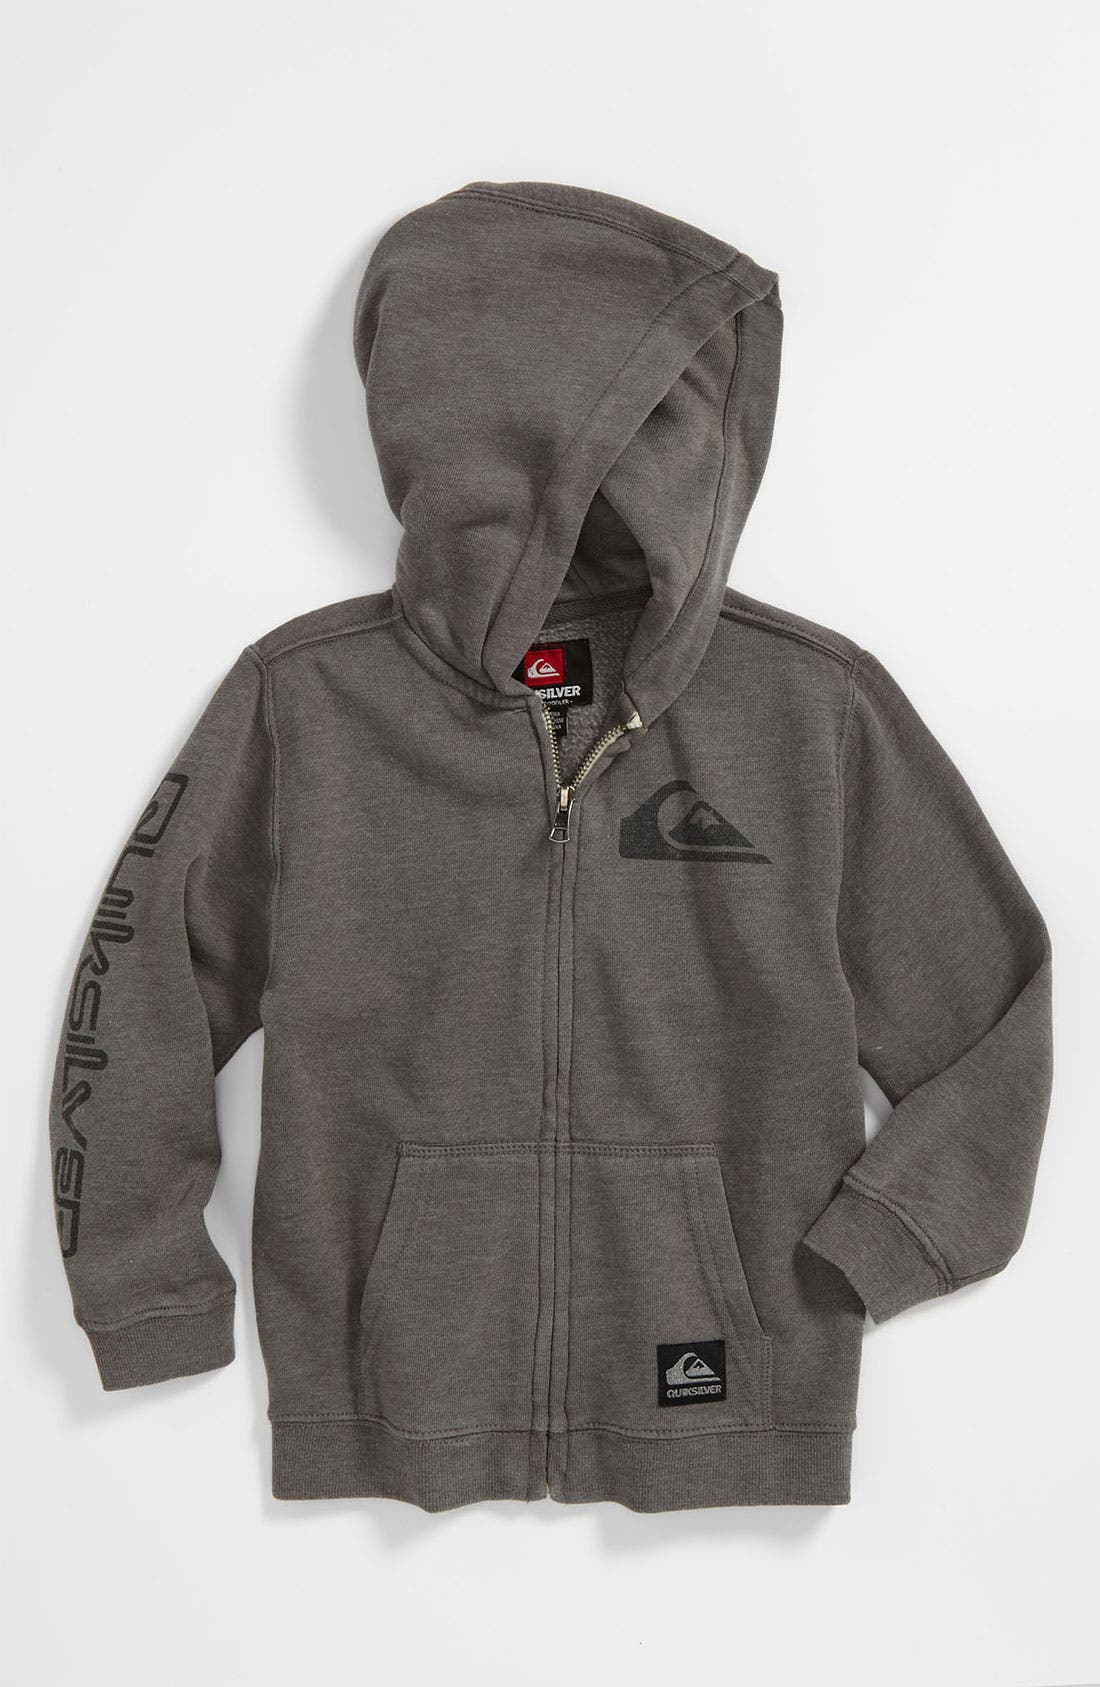 Alternate Image 1 Selected - Quiksilver 'Refresher' Hoodie (Toddler)